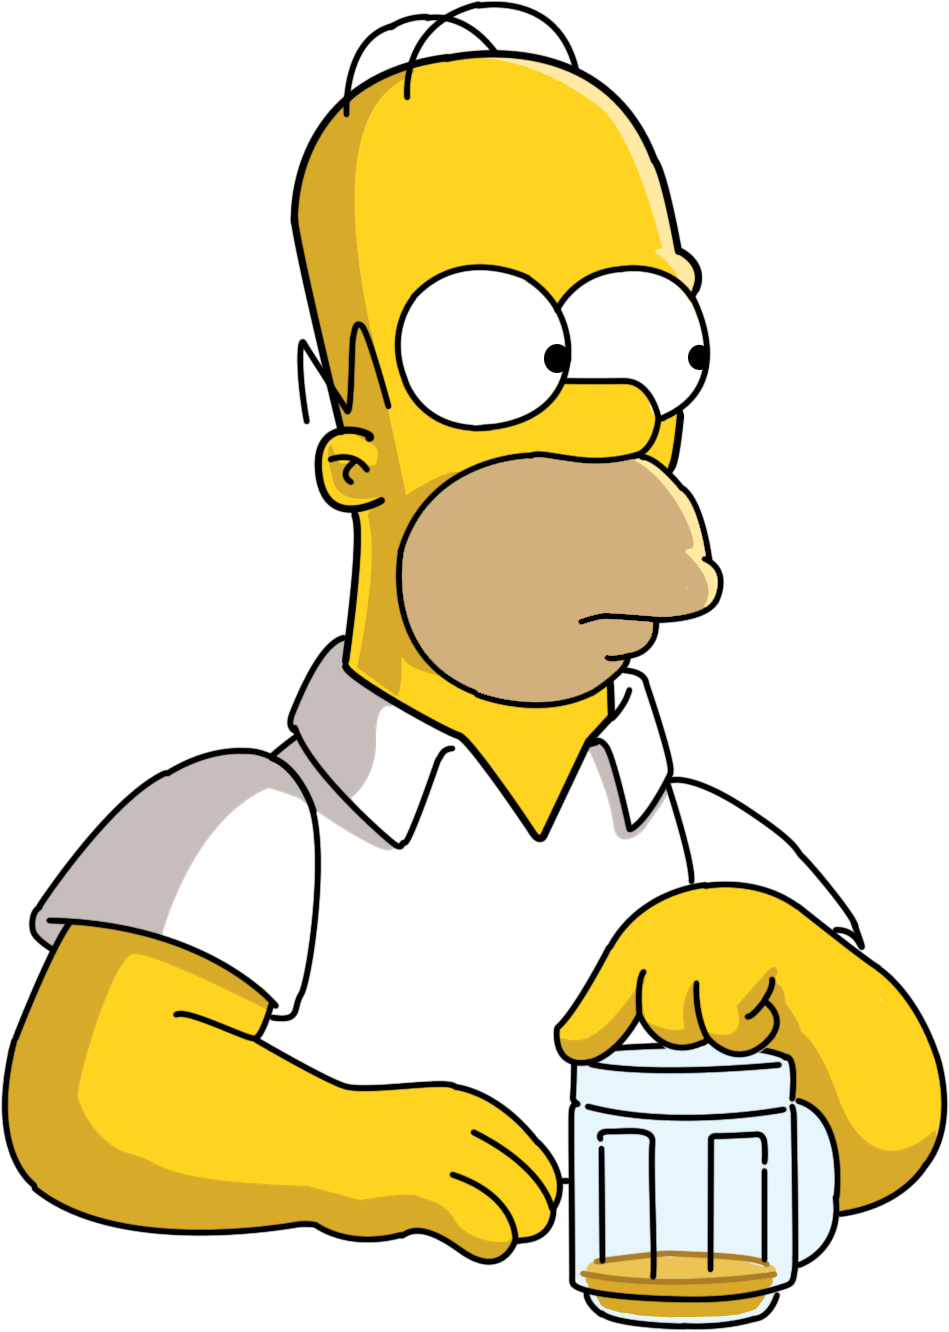 Vector by bark png. Bart drawing homer simpson image black and white